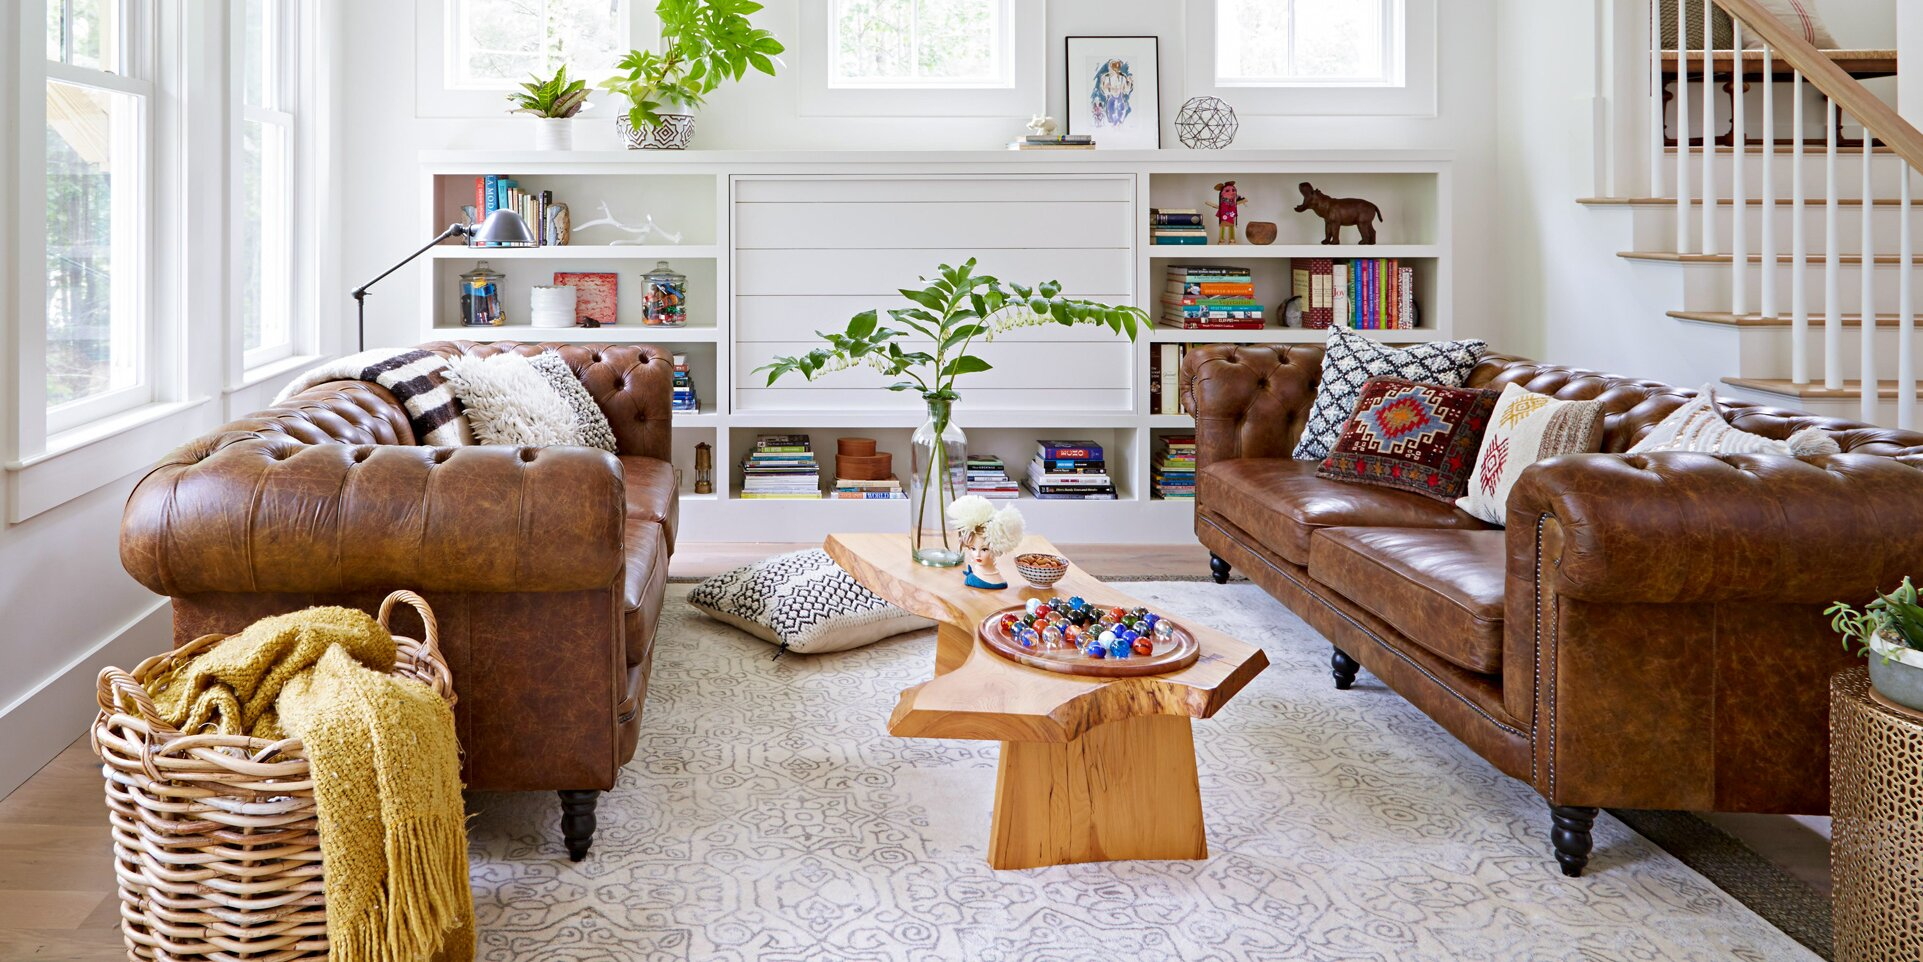 The Best Ways To Clean And Care For Leather Furniture And Apparel Better Homes Gardens